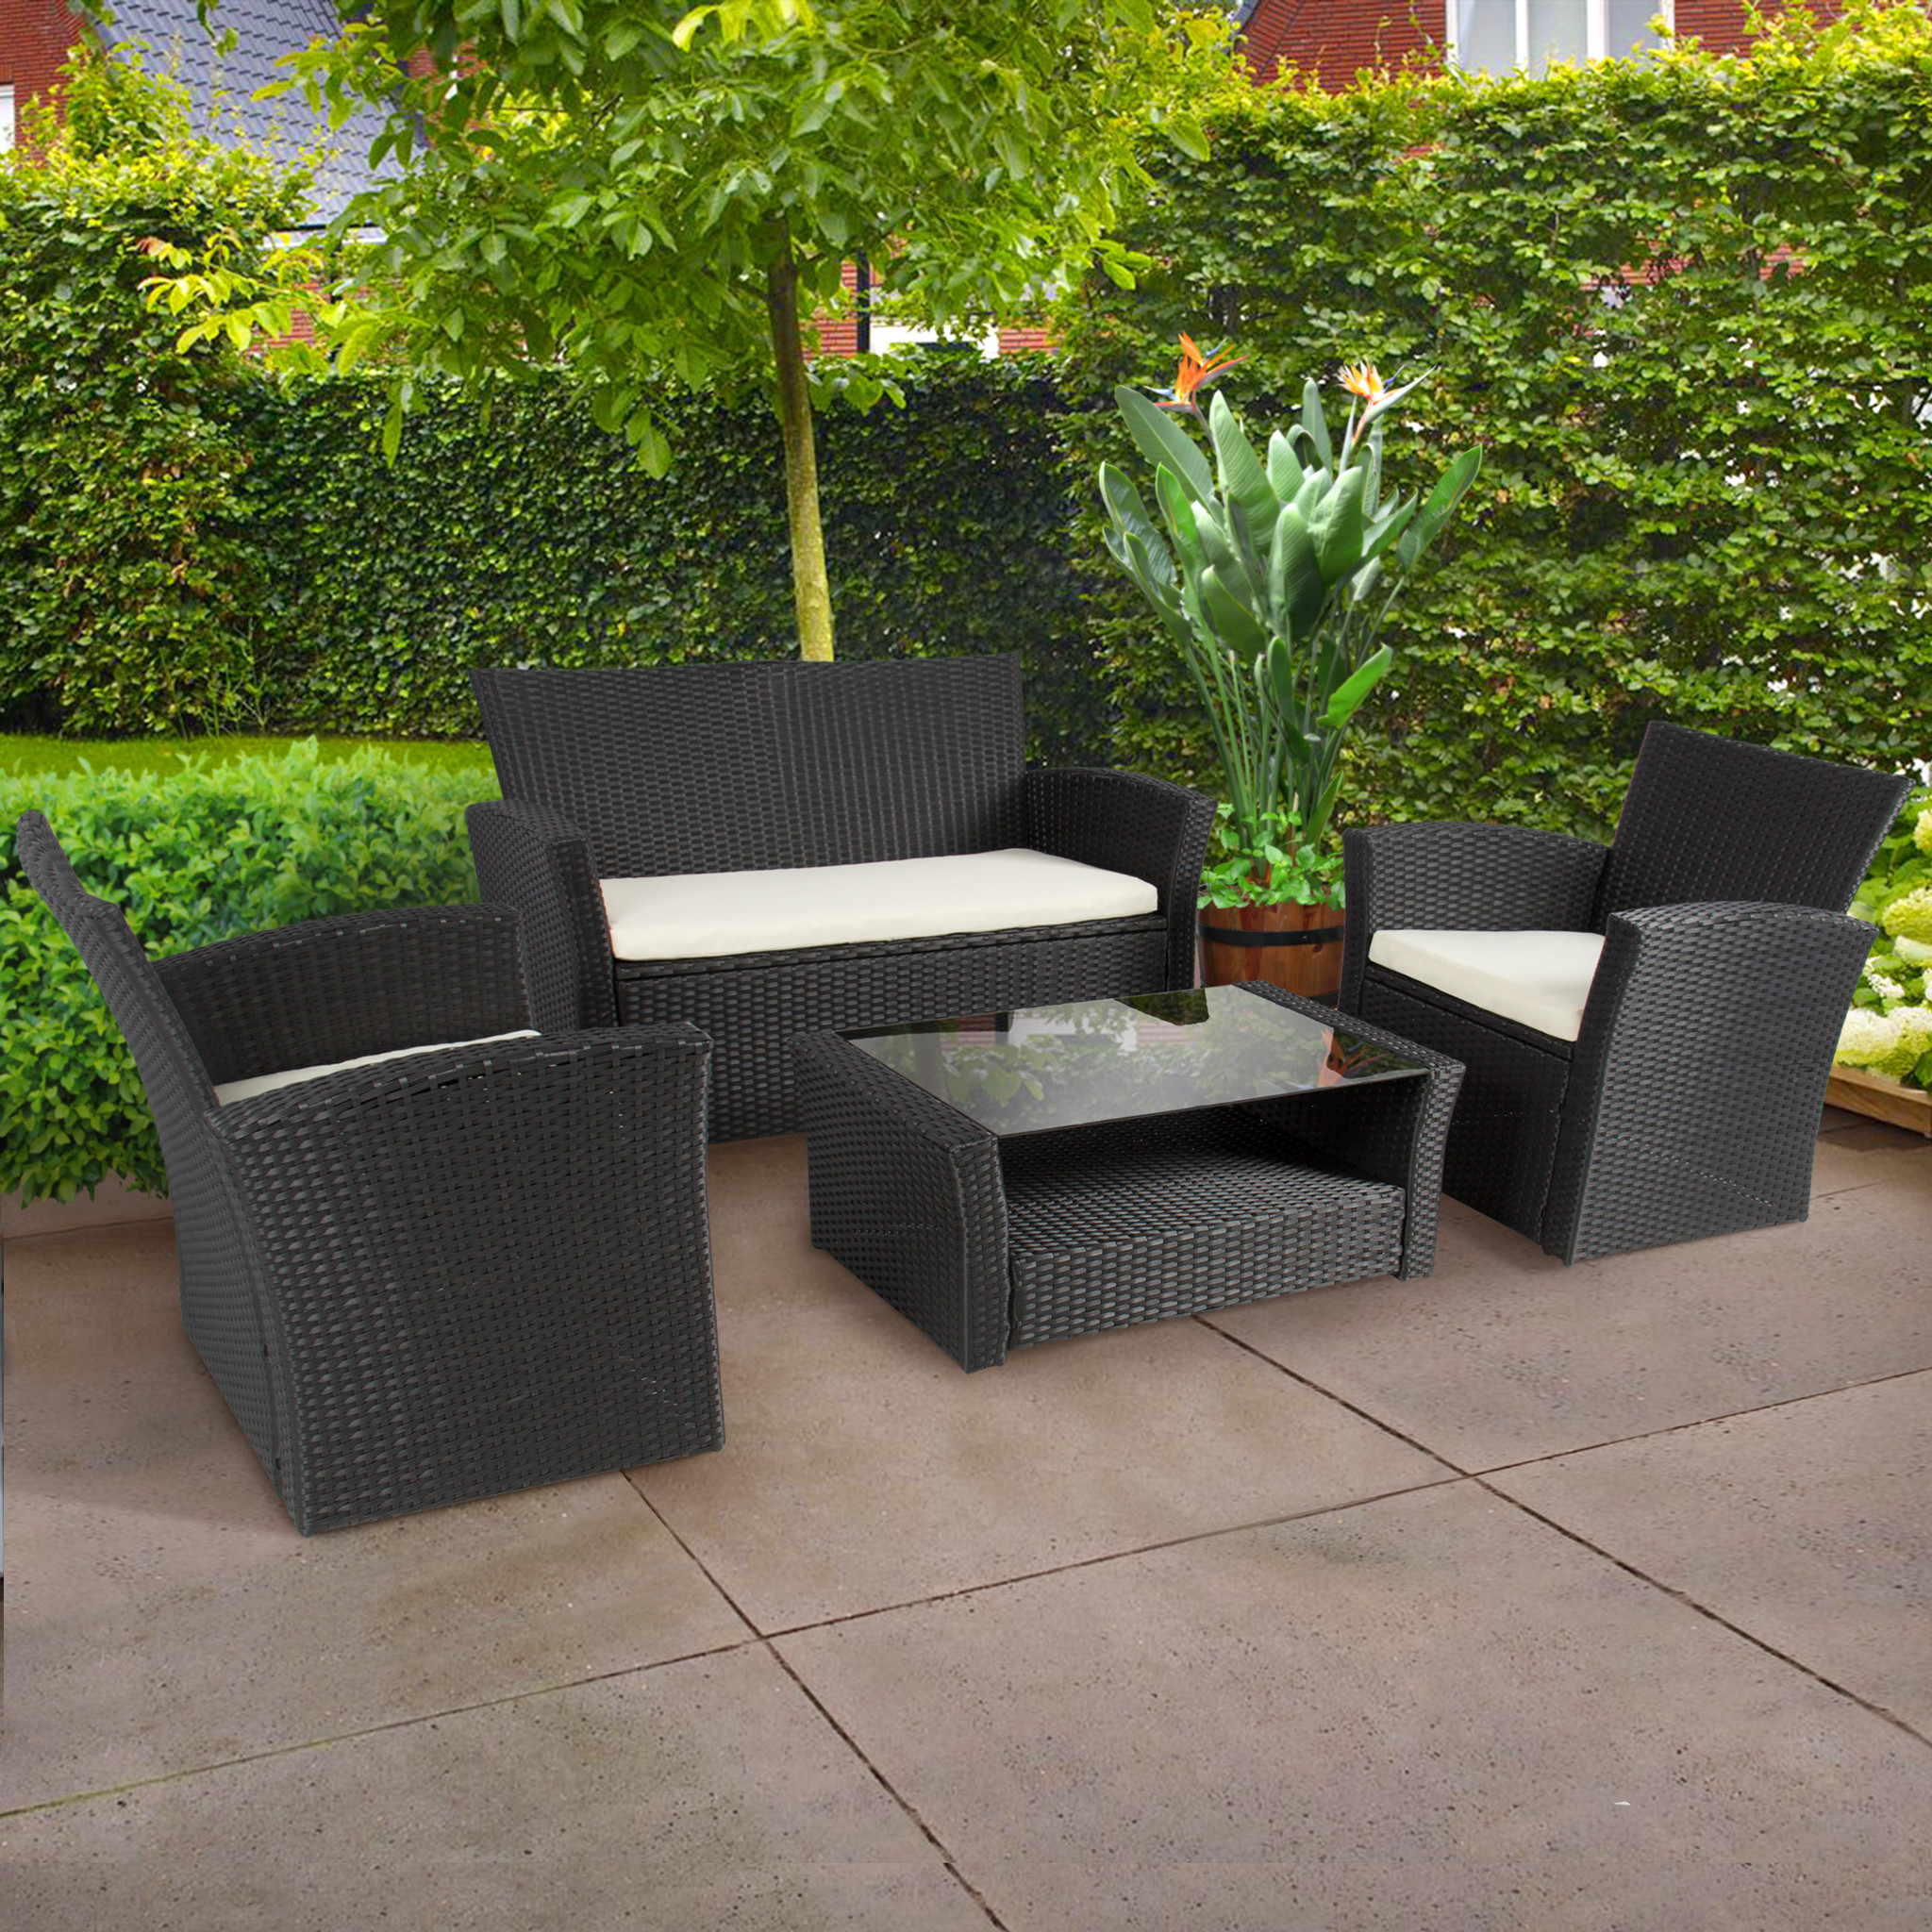 How to select the best quality patio furniture for your for Black porch furniture